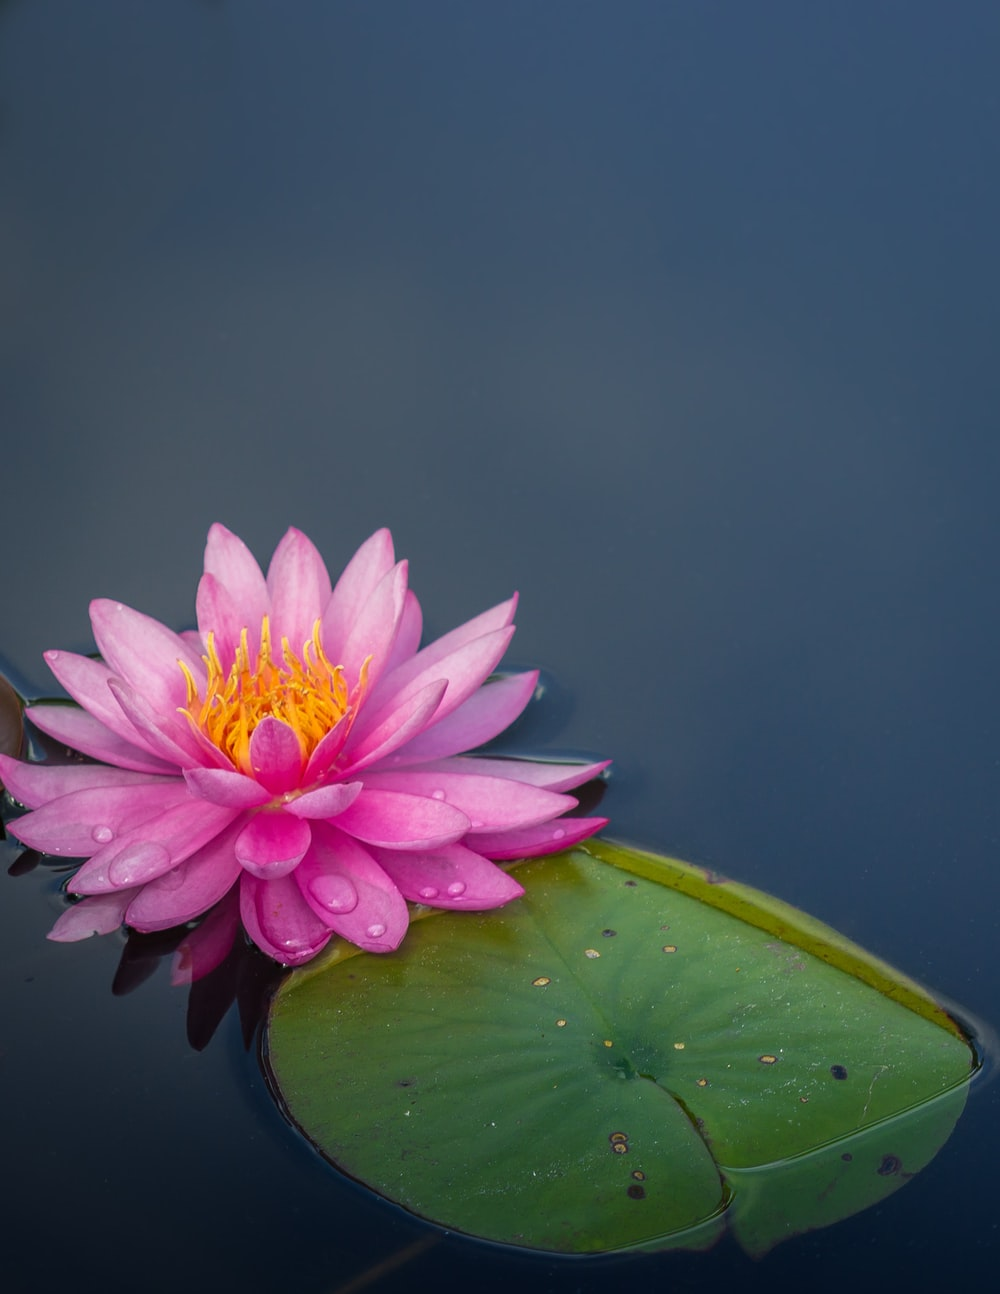 100 lily pictures download free images on unsplash pink lotus flower on body of water izmirmasajfo